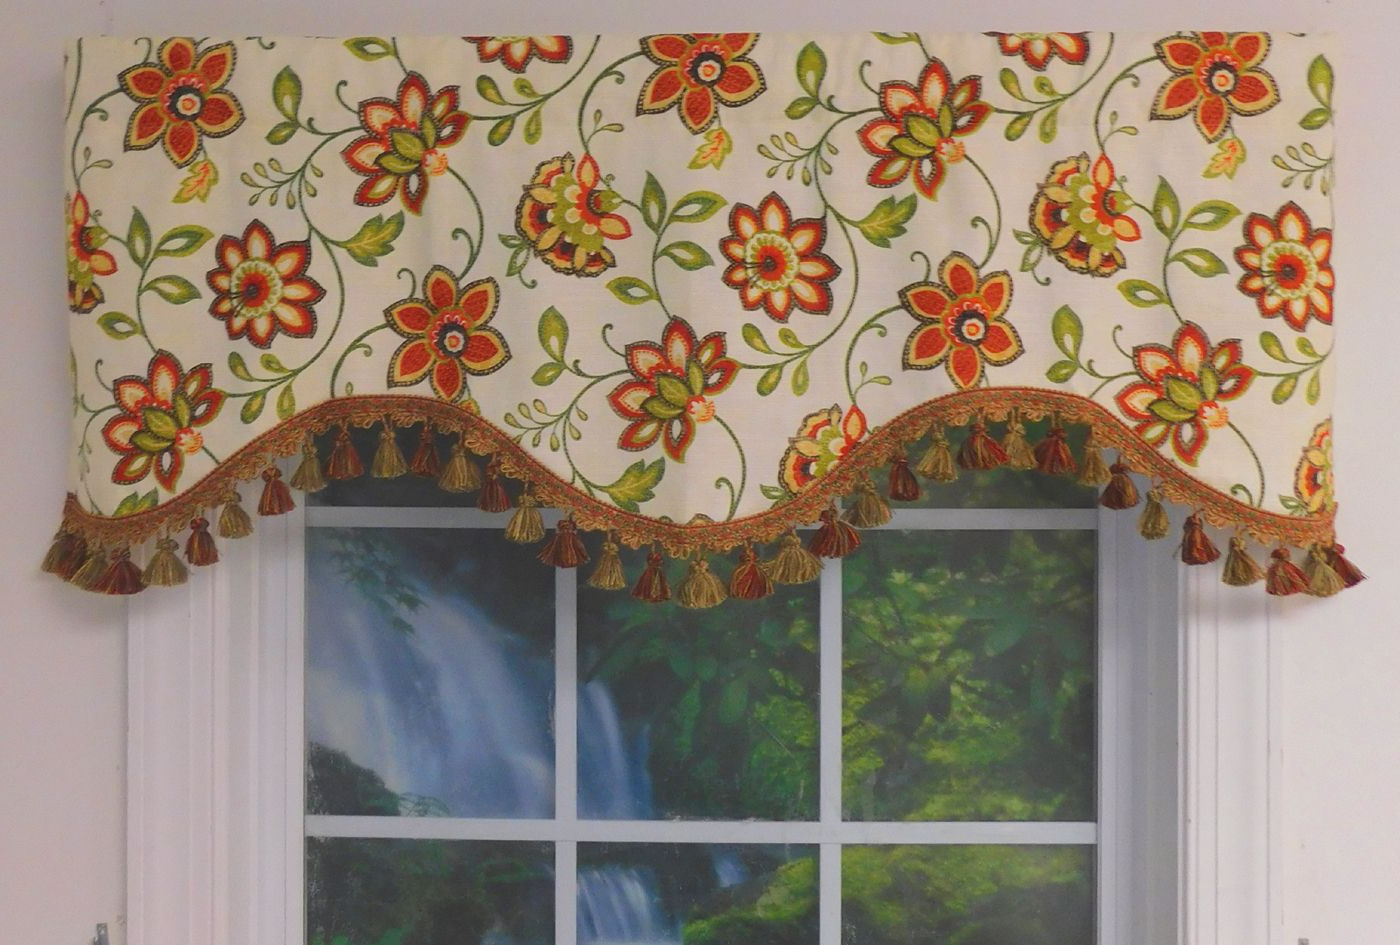 Grace Cinnabar 5 Piece Curtain Tier And Swag Sets For Current Shaped Valances: Solid, Patterned, Cornice, Box Pleat (View 20 of 20)